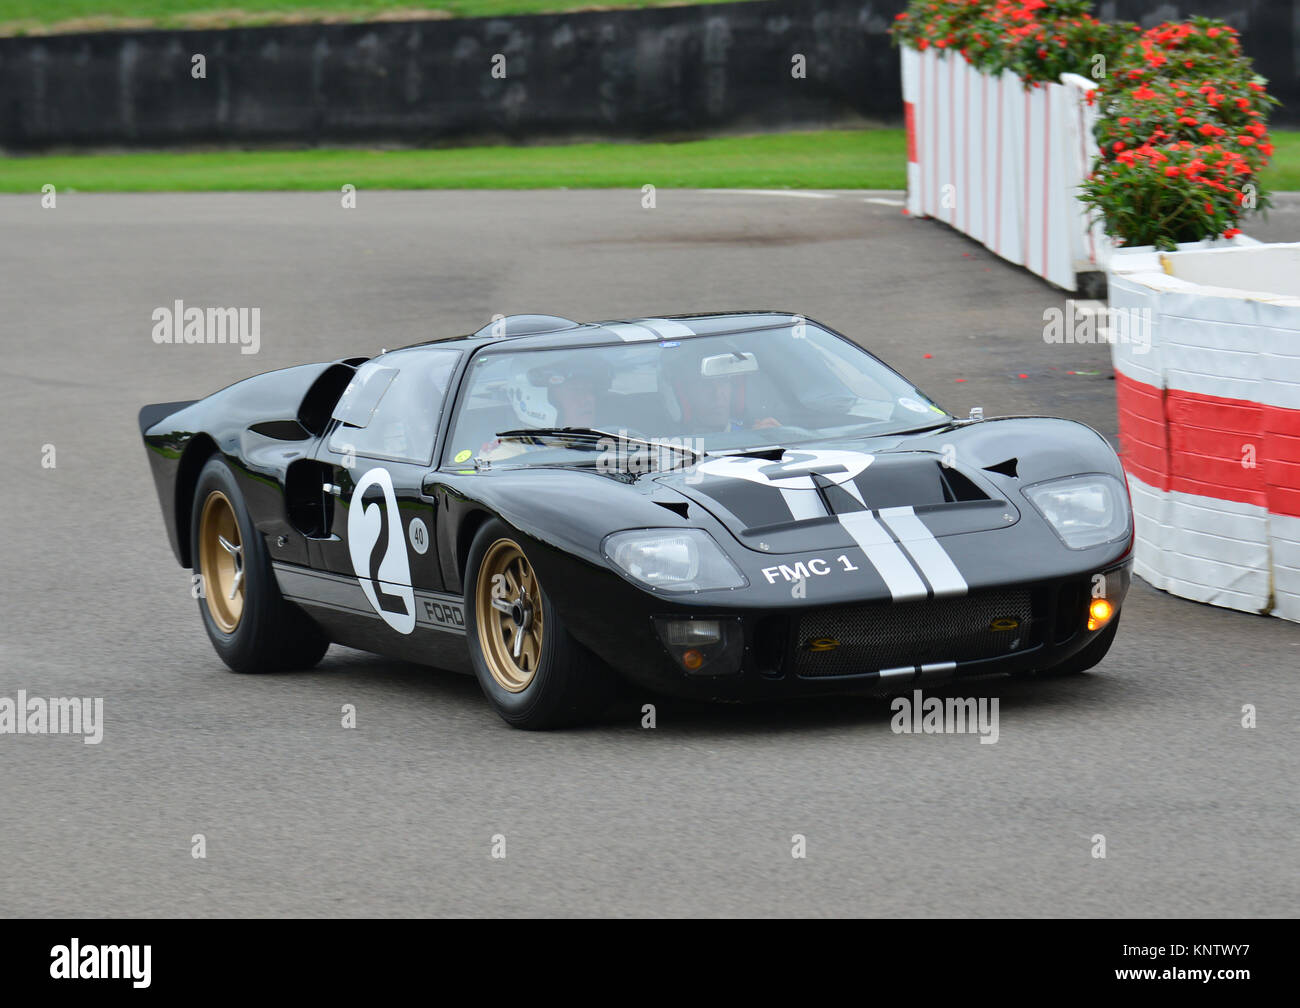 David Hart, John Hugenholtz, Goodwood Revival 2013, Whitsun Trophy race for GT40's. FMC 1. - Stock Image